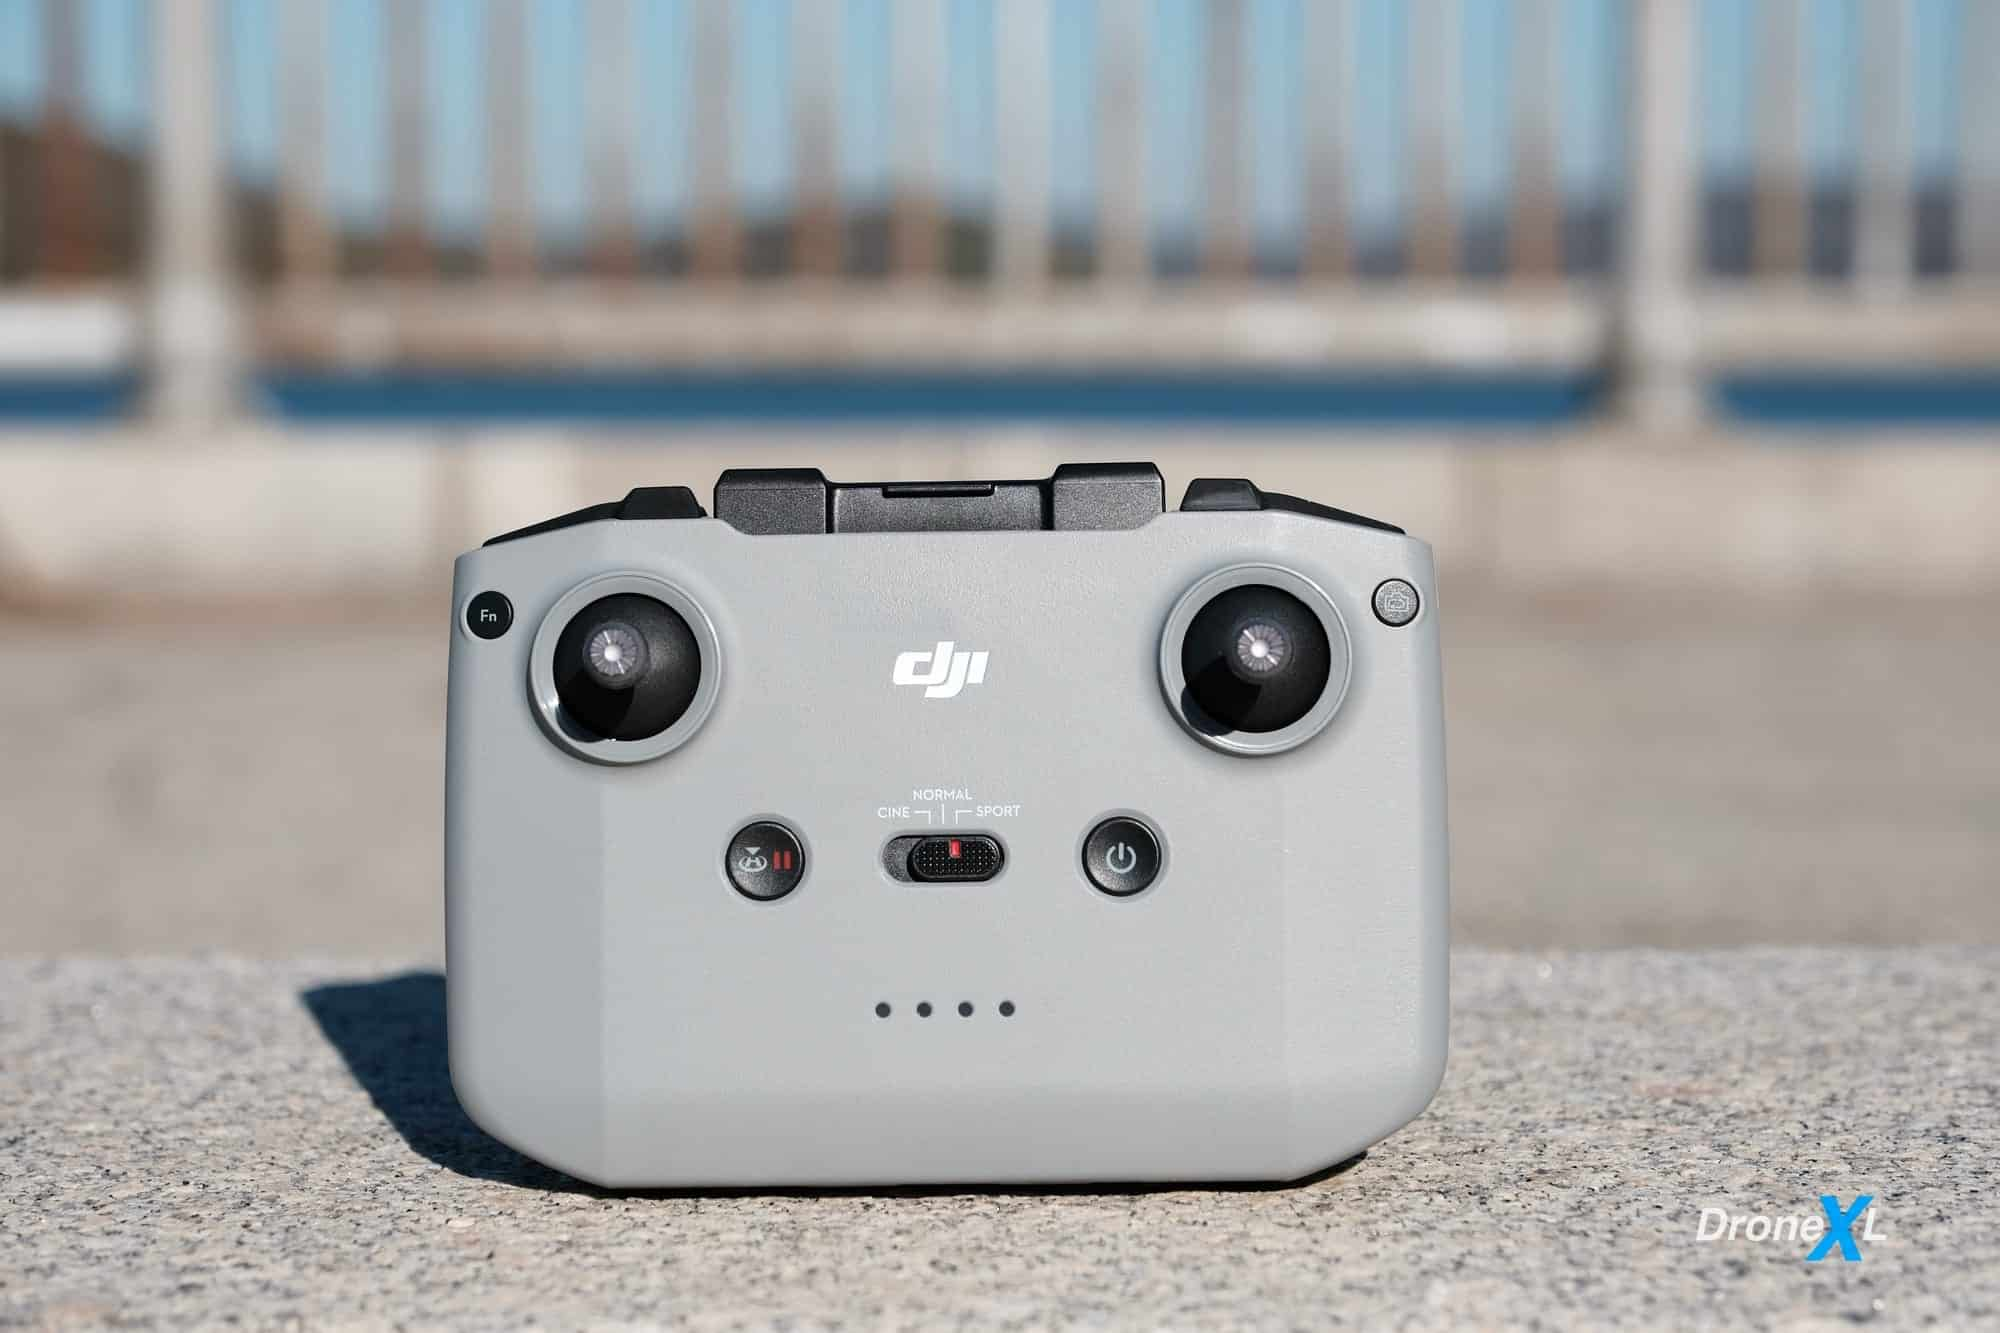 Mini 2 first impressions flying the 249-grams DJI drone